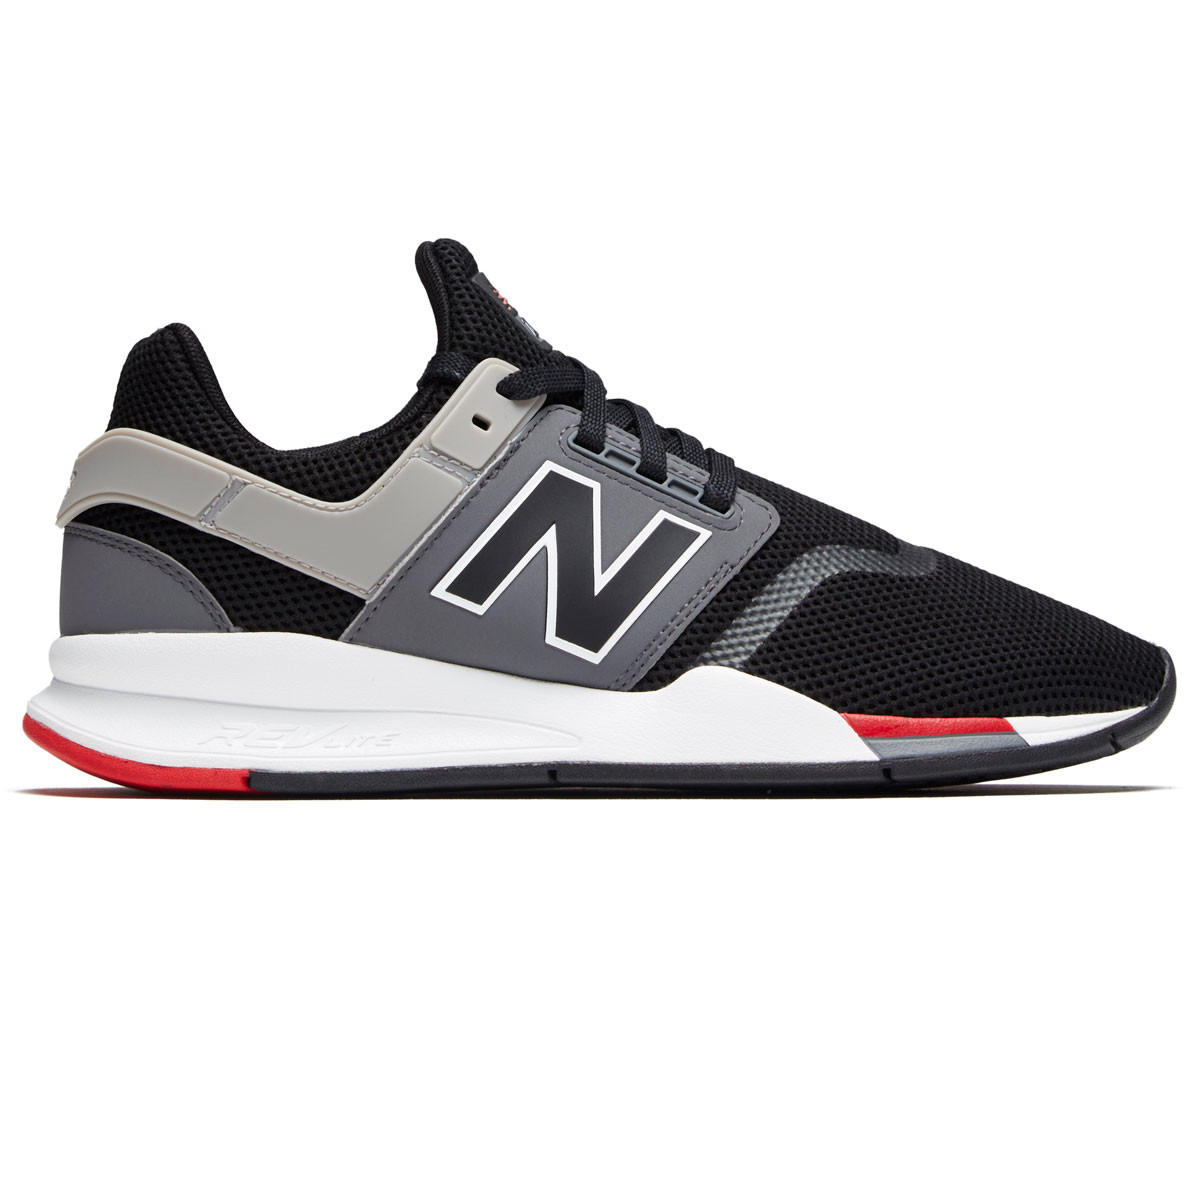 Desmantelar vacío Shipley  New Balance 247v2 Shoes